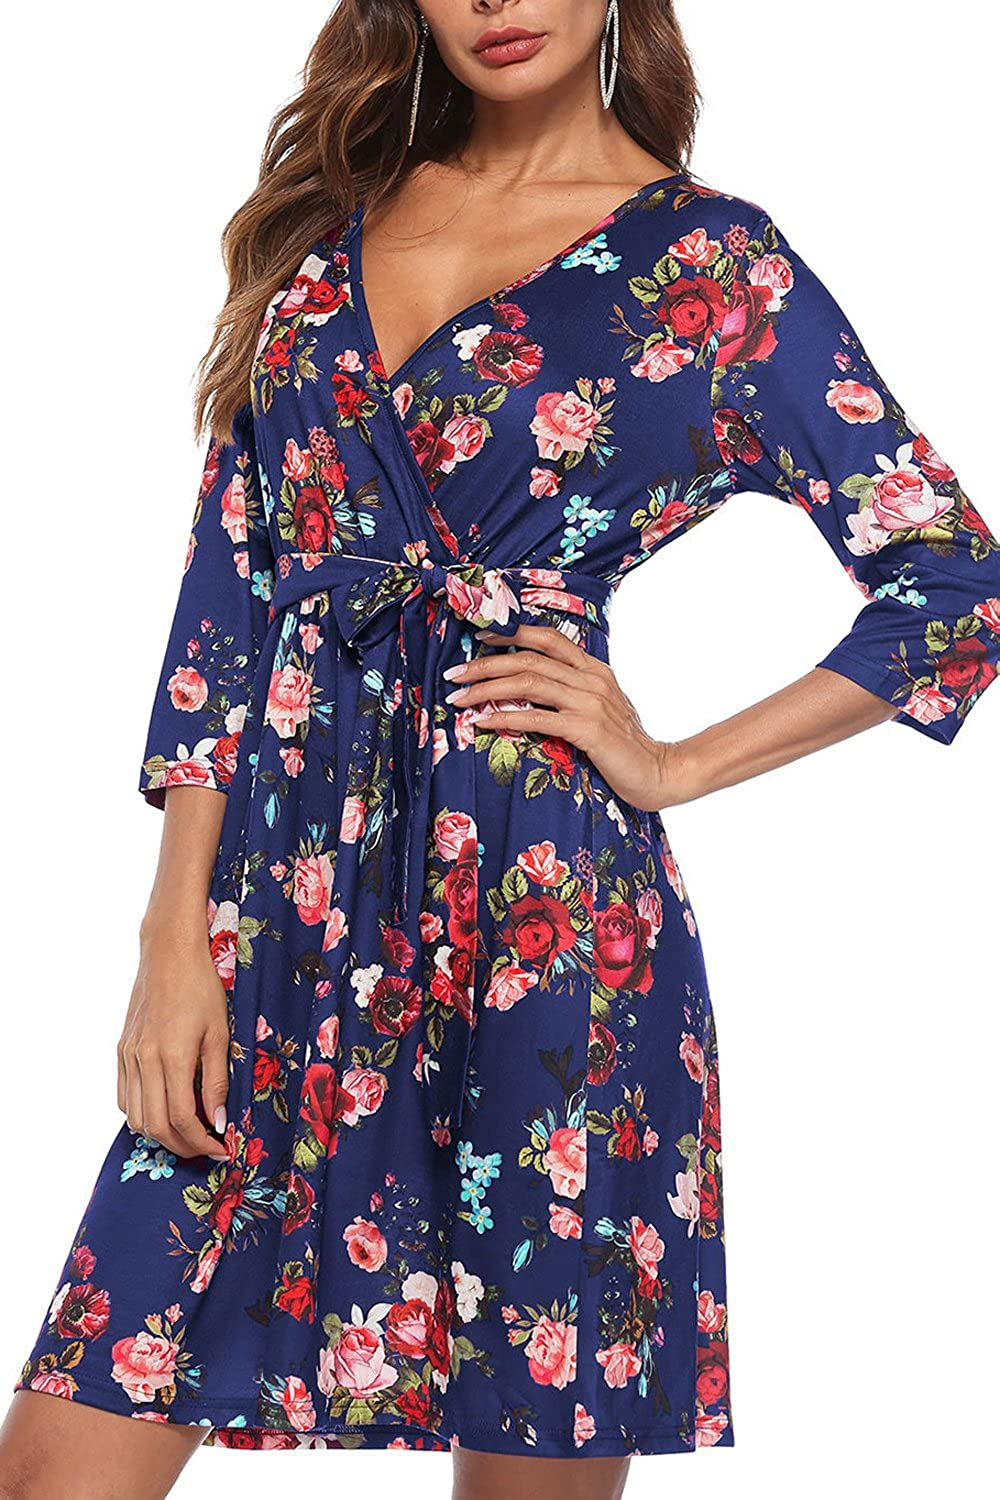 bluee Mulisky Women's Floral Print V Neck 3 4 Sleeves Belted A Line Casual Loose Dress